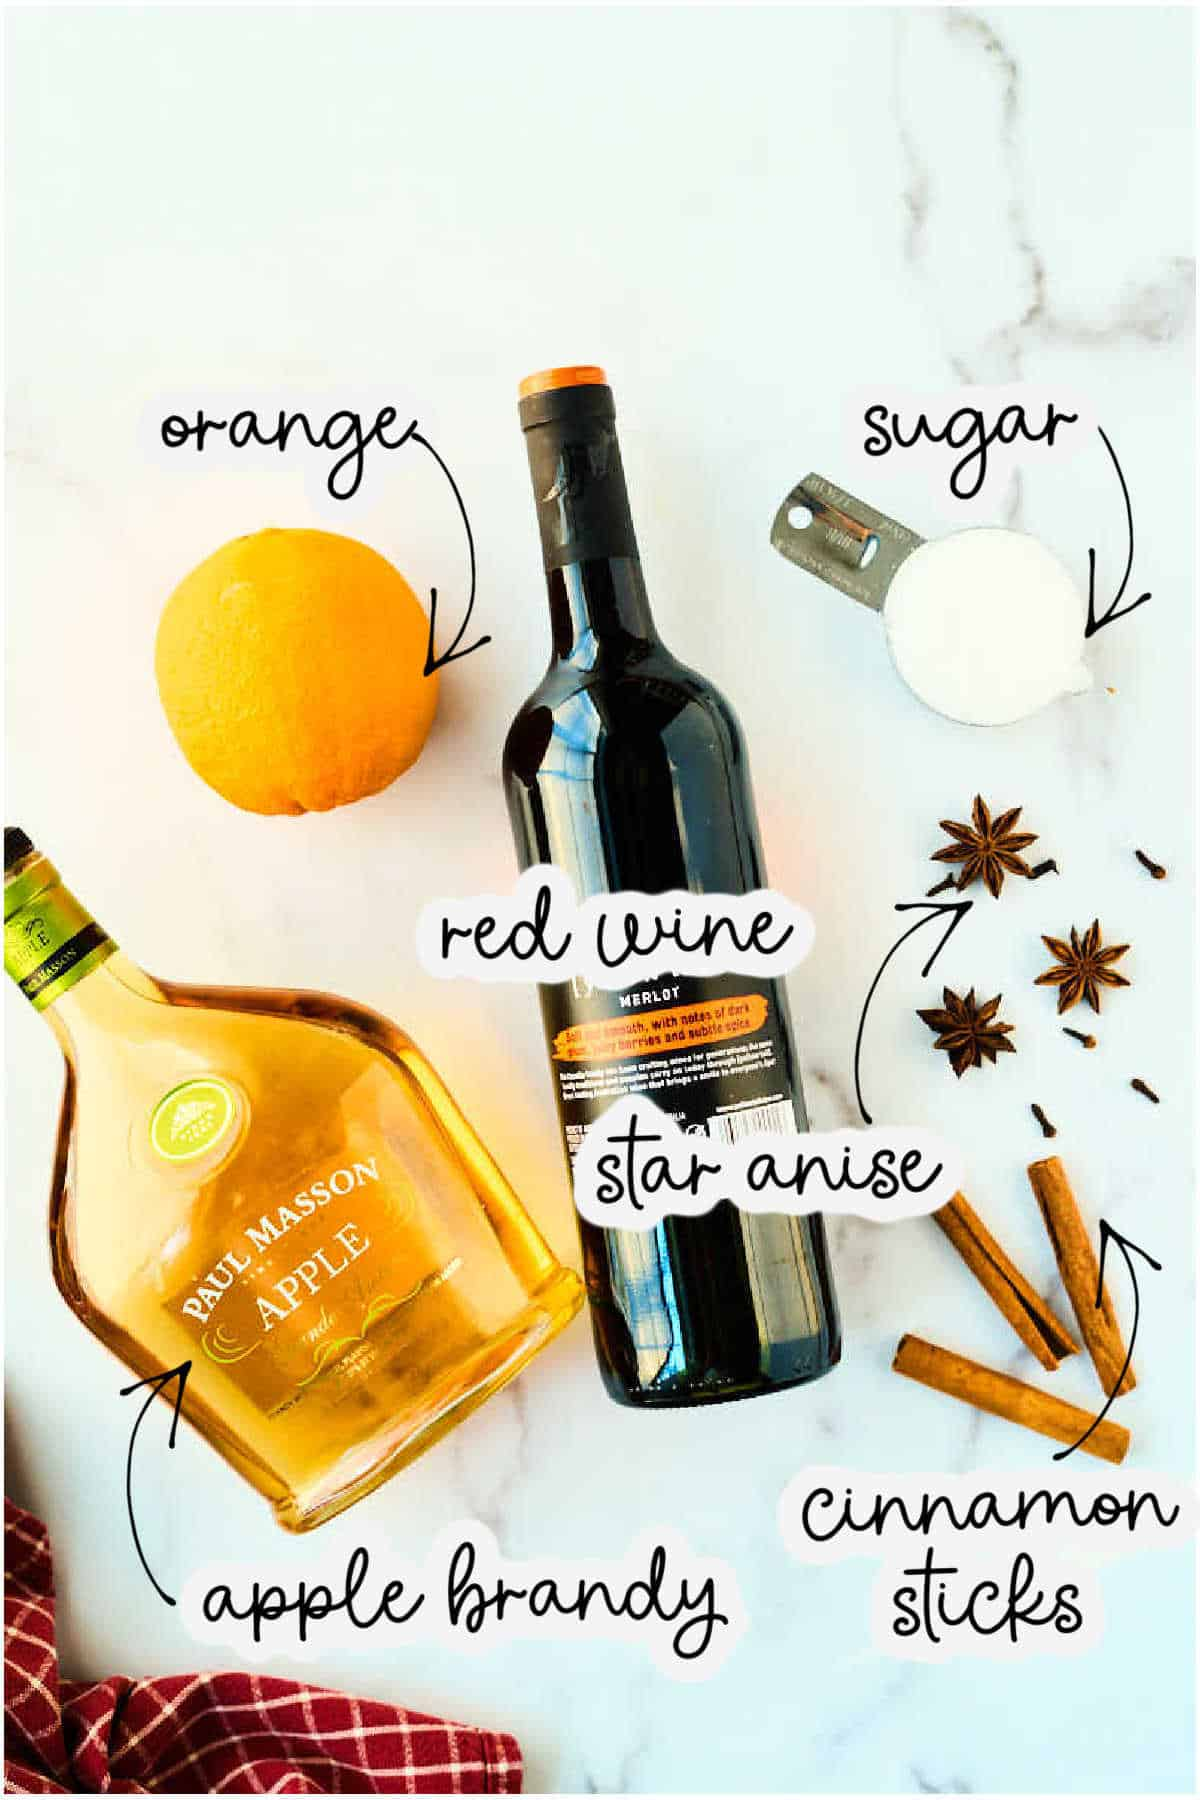 bottle of red wine, cinnamon sticks, sugar, star anise, and apple brandy on marble counter